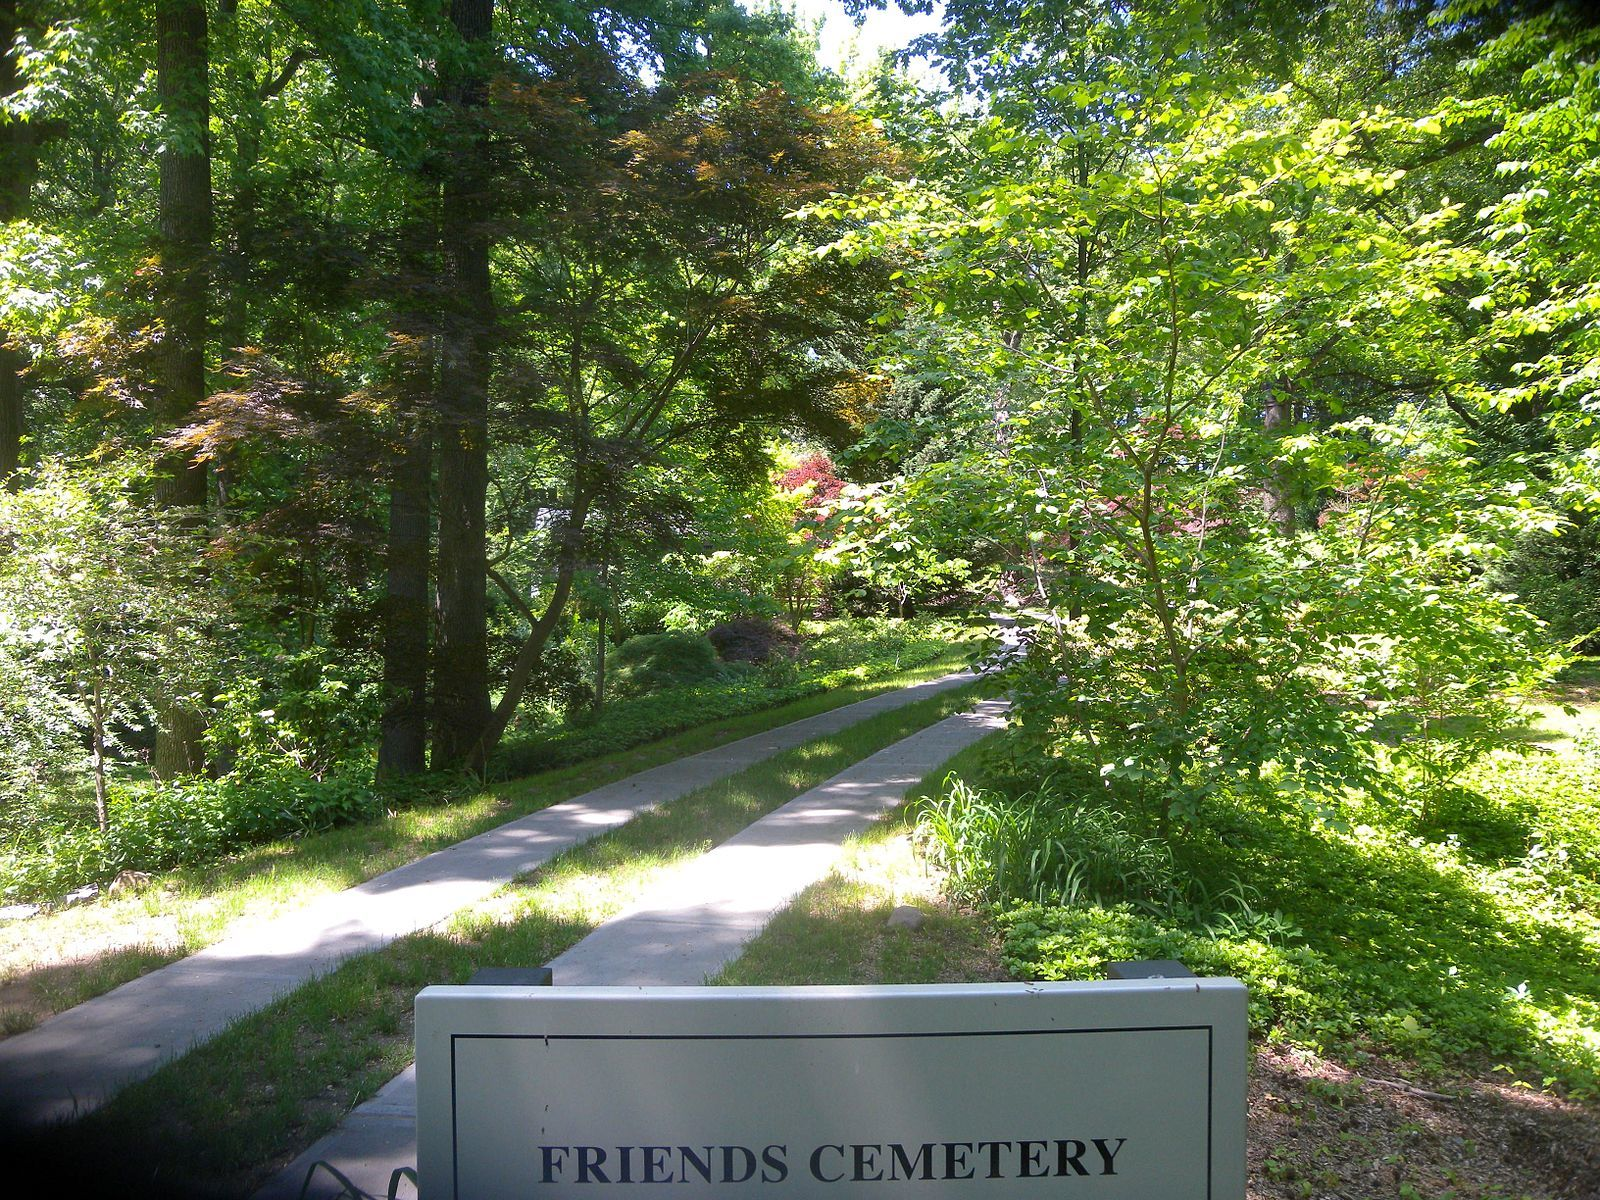 Friends Cemetery in Prospect Park